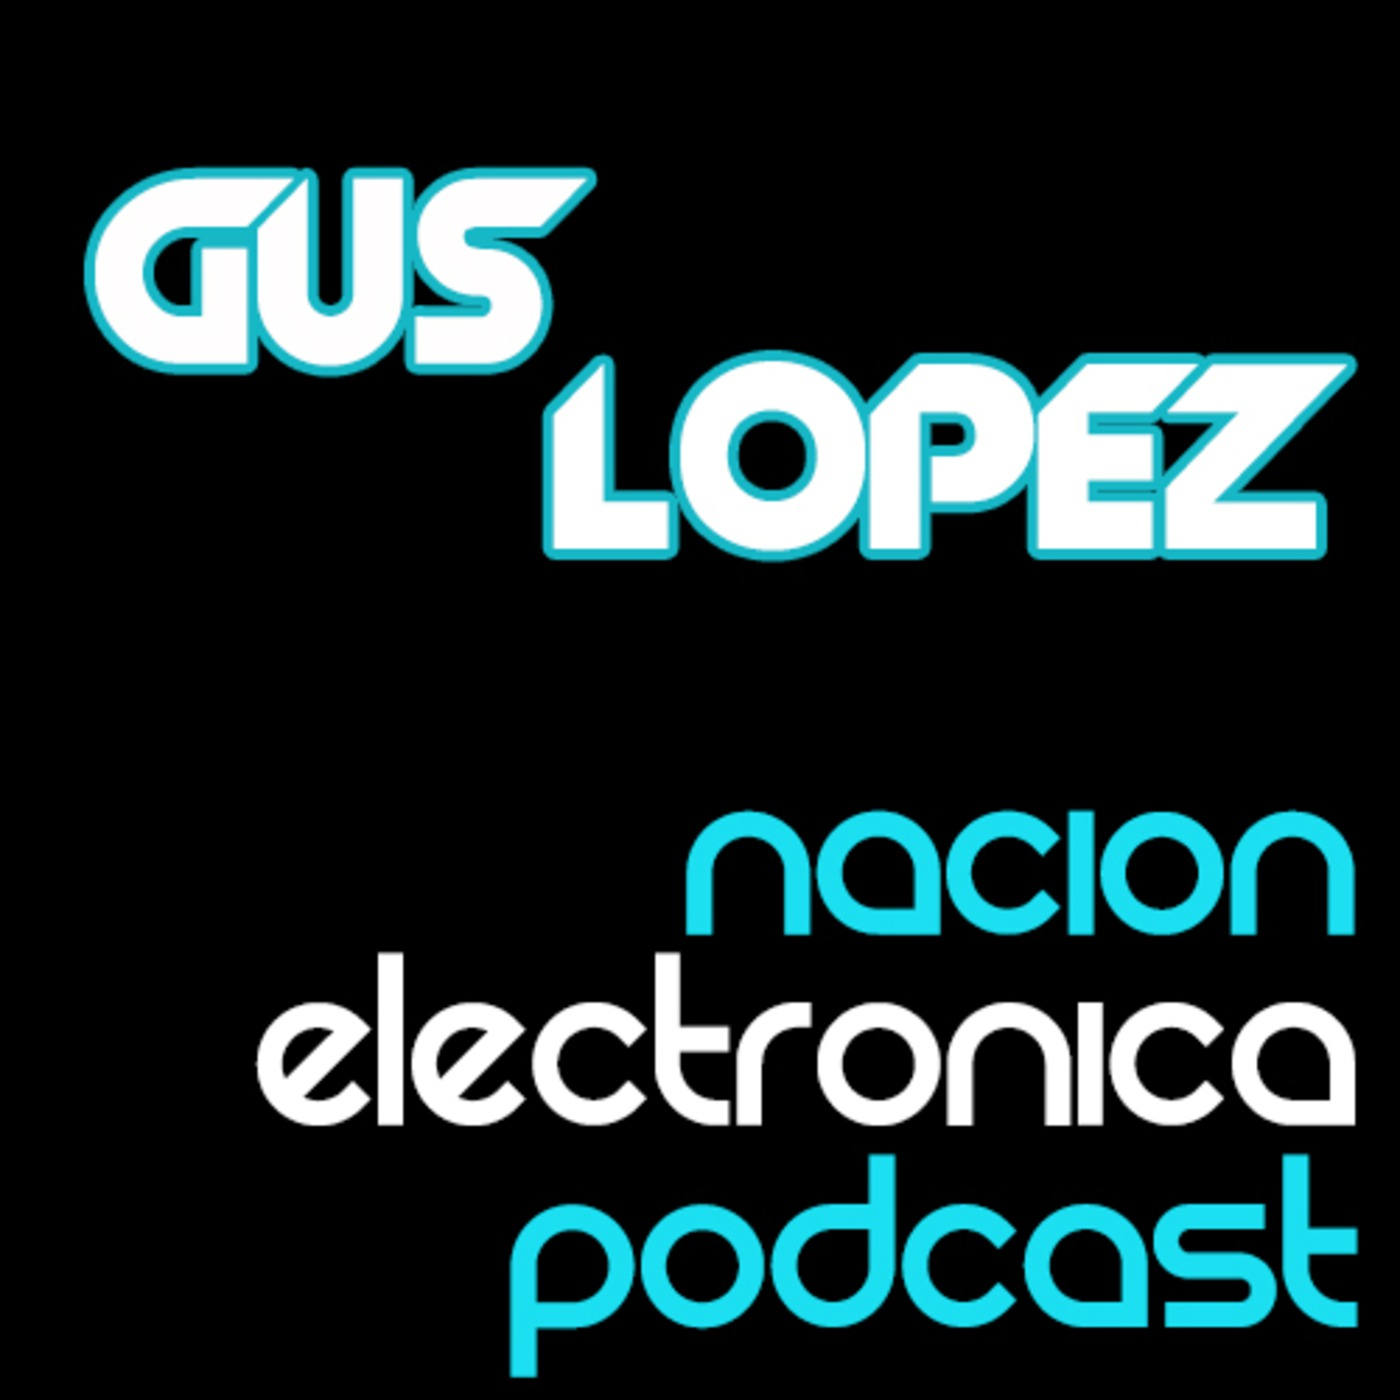 Nacion Electronica Podcast